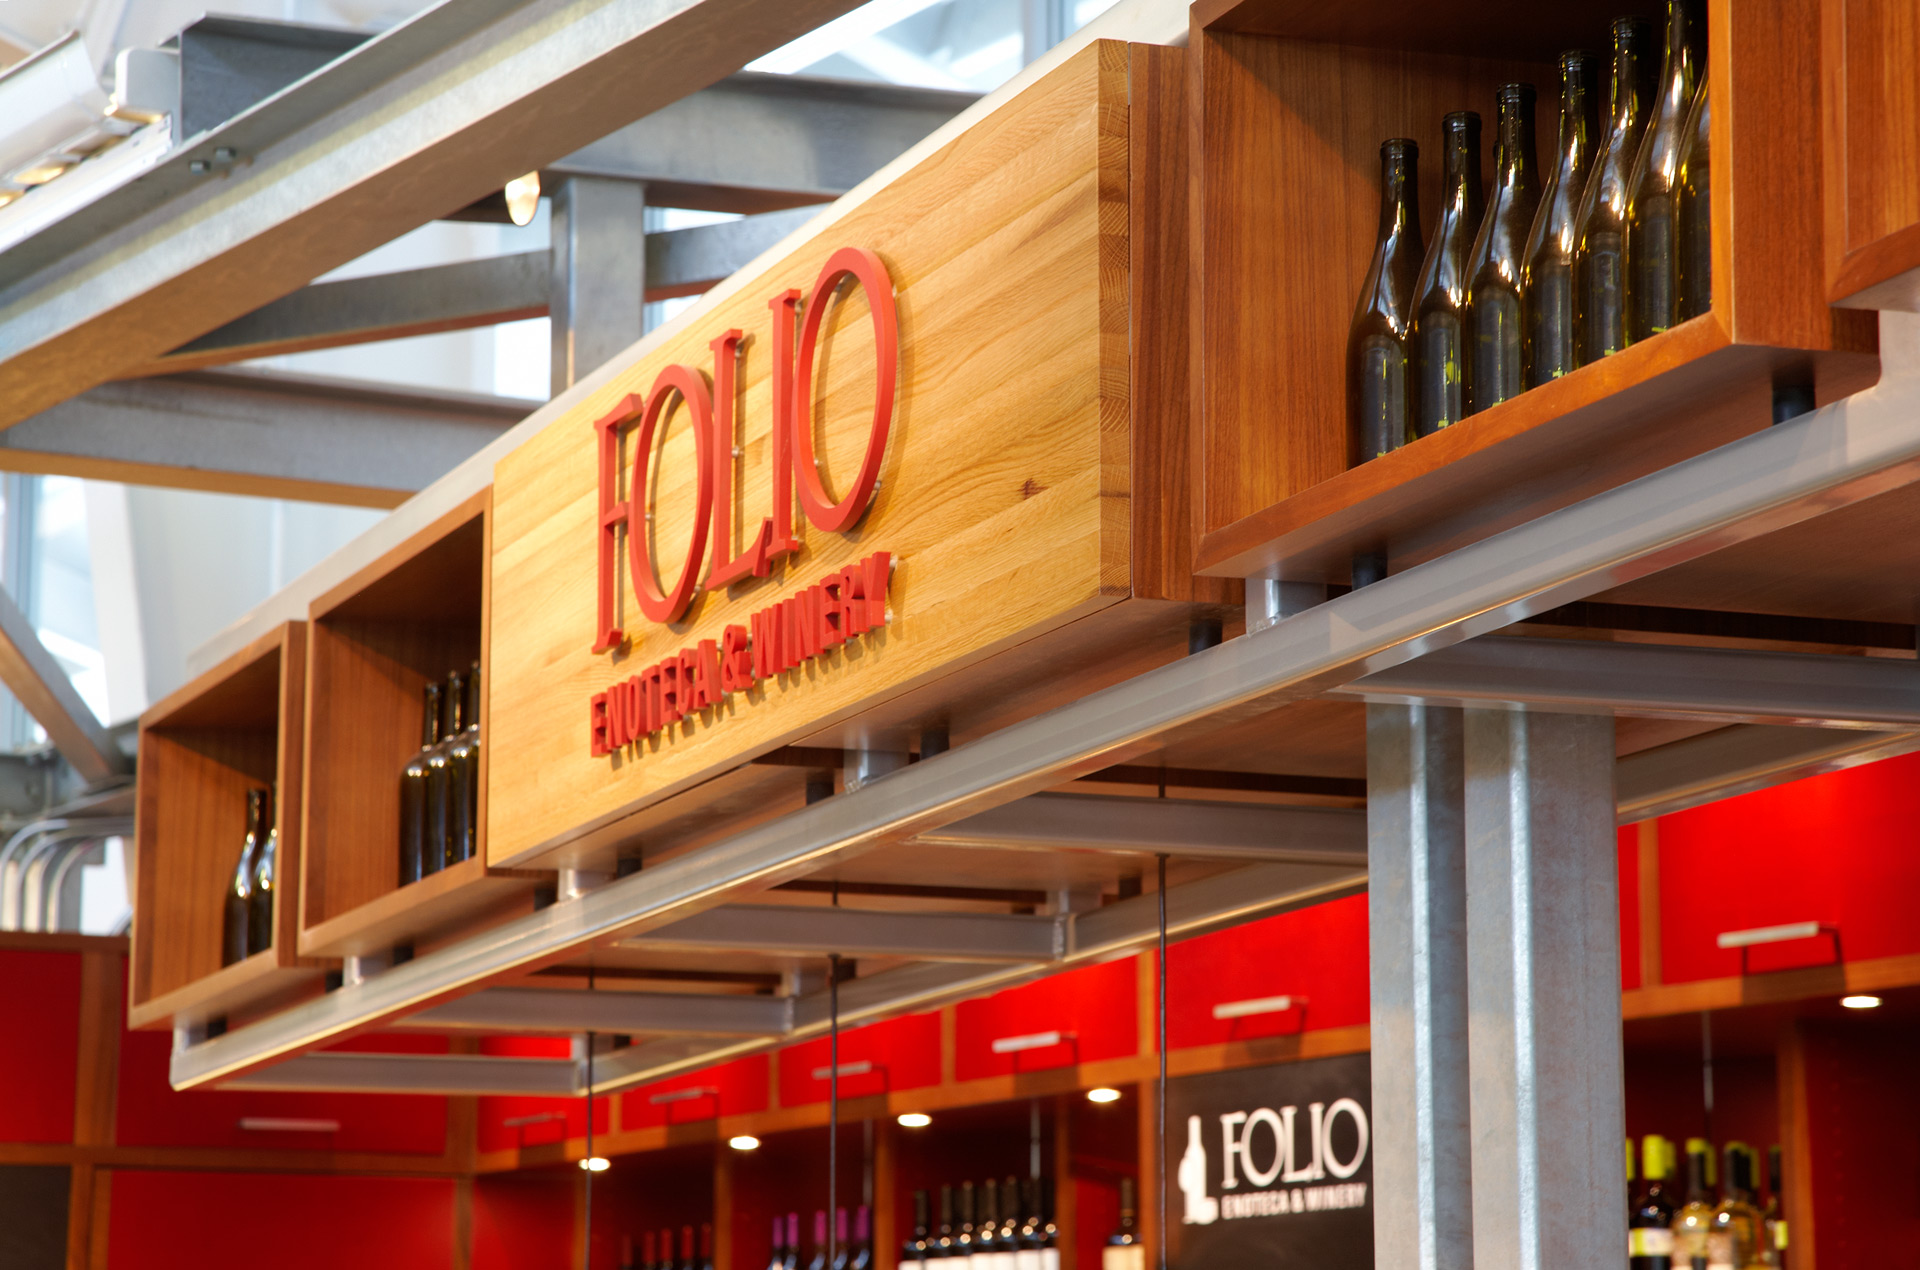 Folio Enoteca & Winery restaurant decor